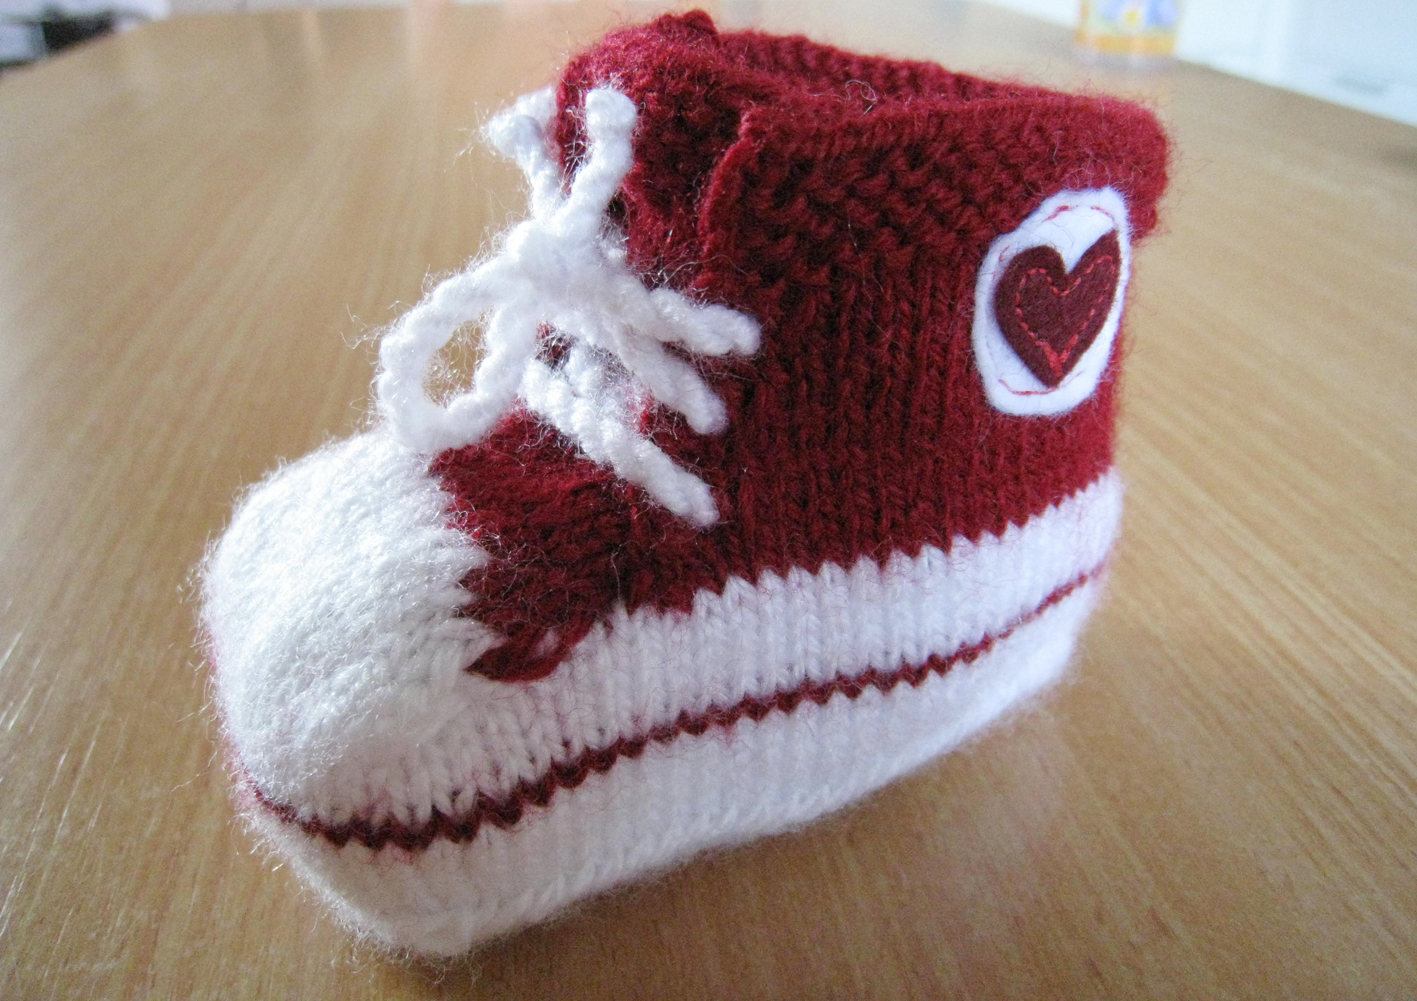 Baby Chucks Stricken Desleutelbenjezelf Blog